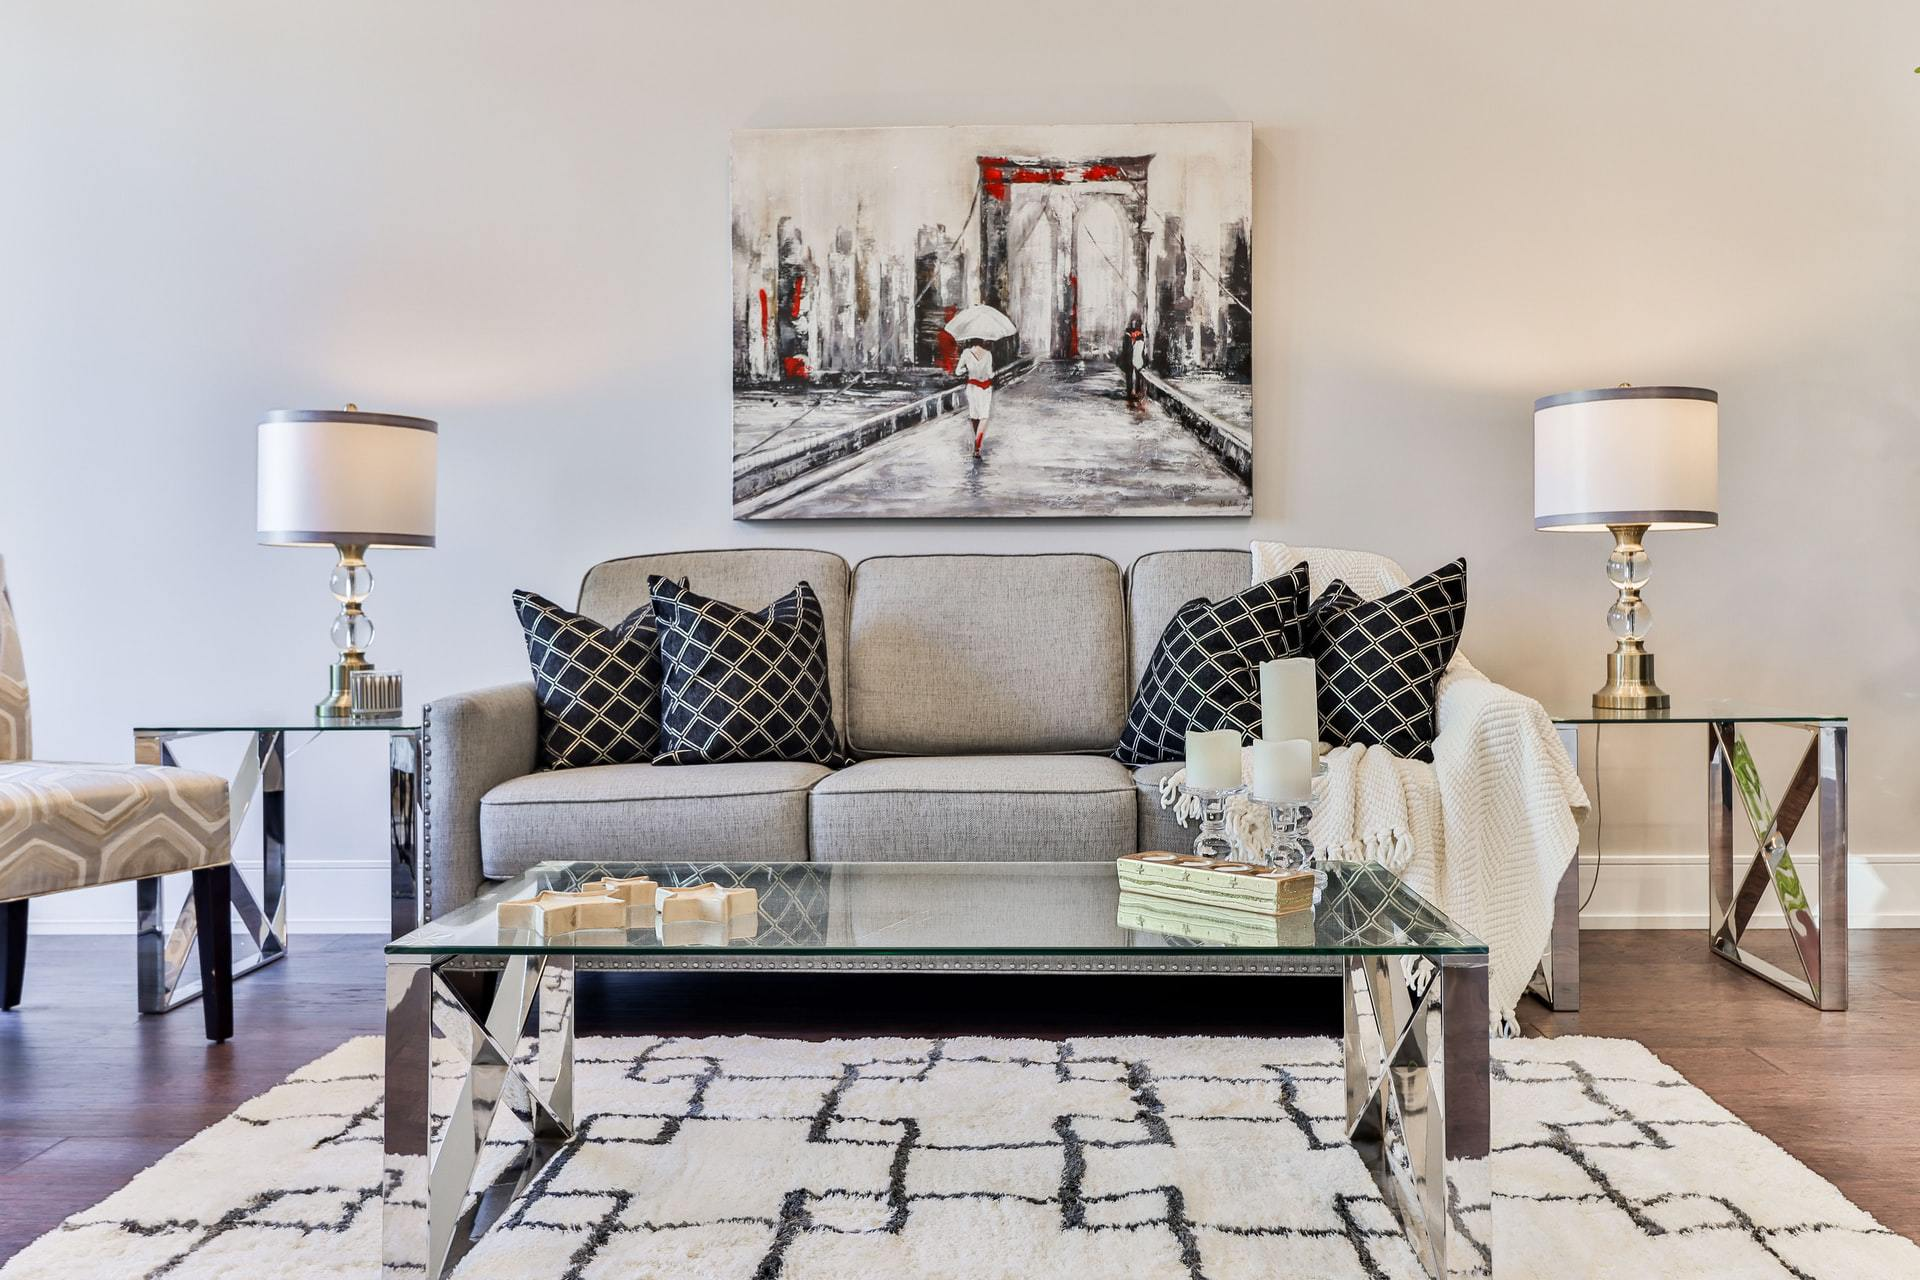 Look Smart With Black Patterned Throw Pillows on a Grey Couch